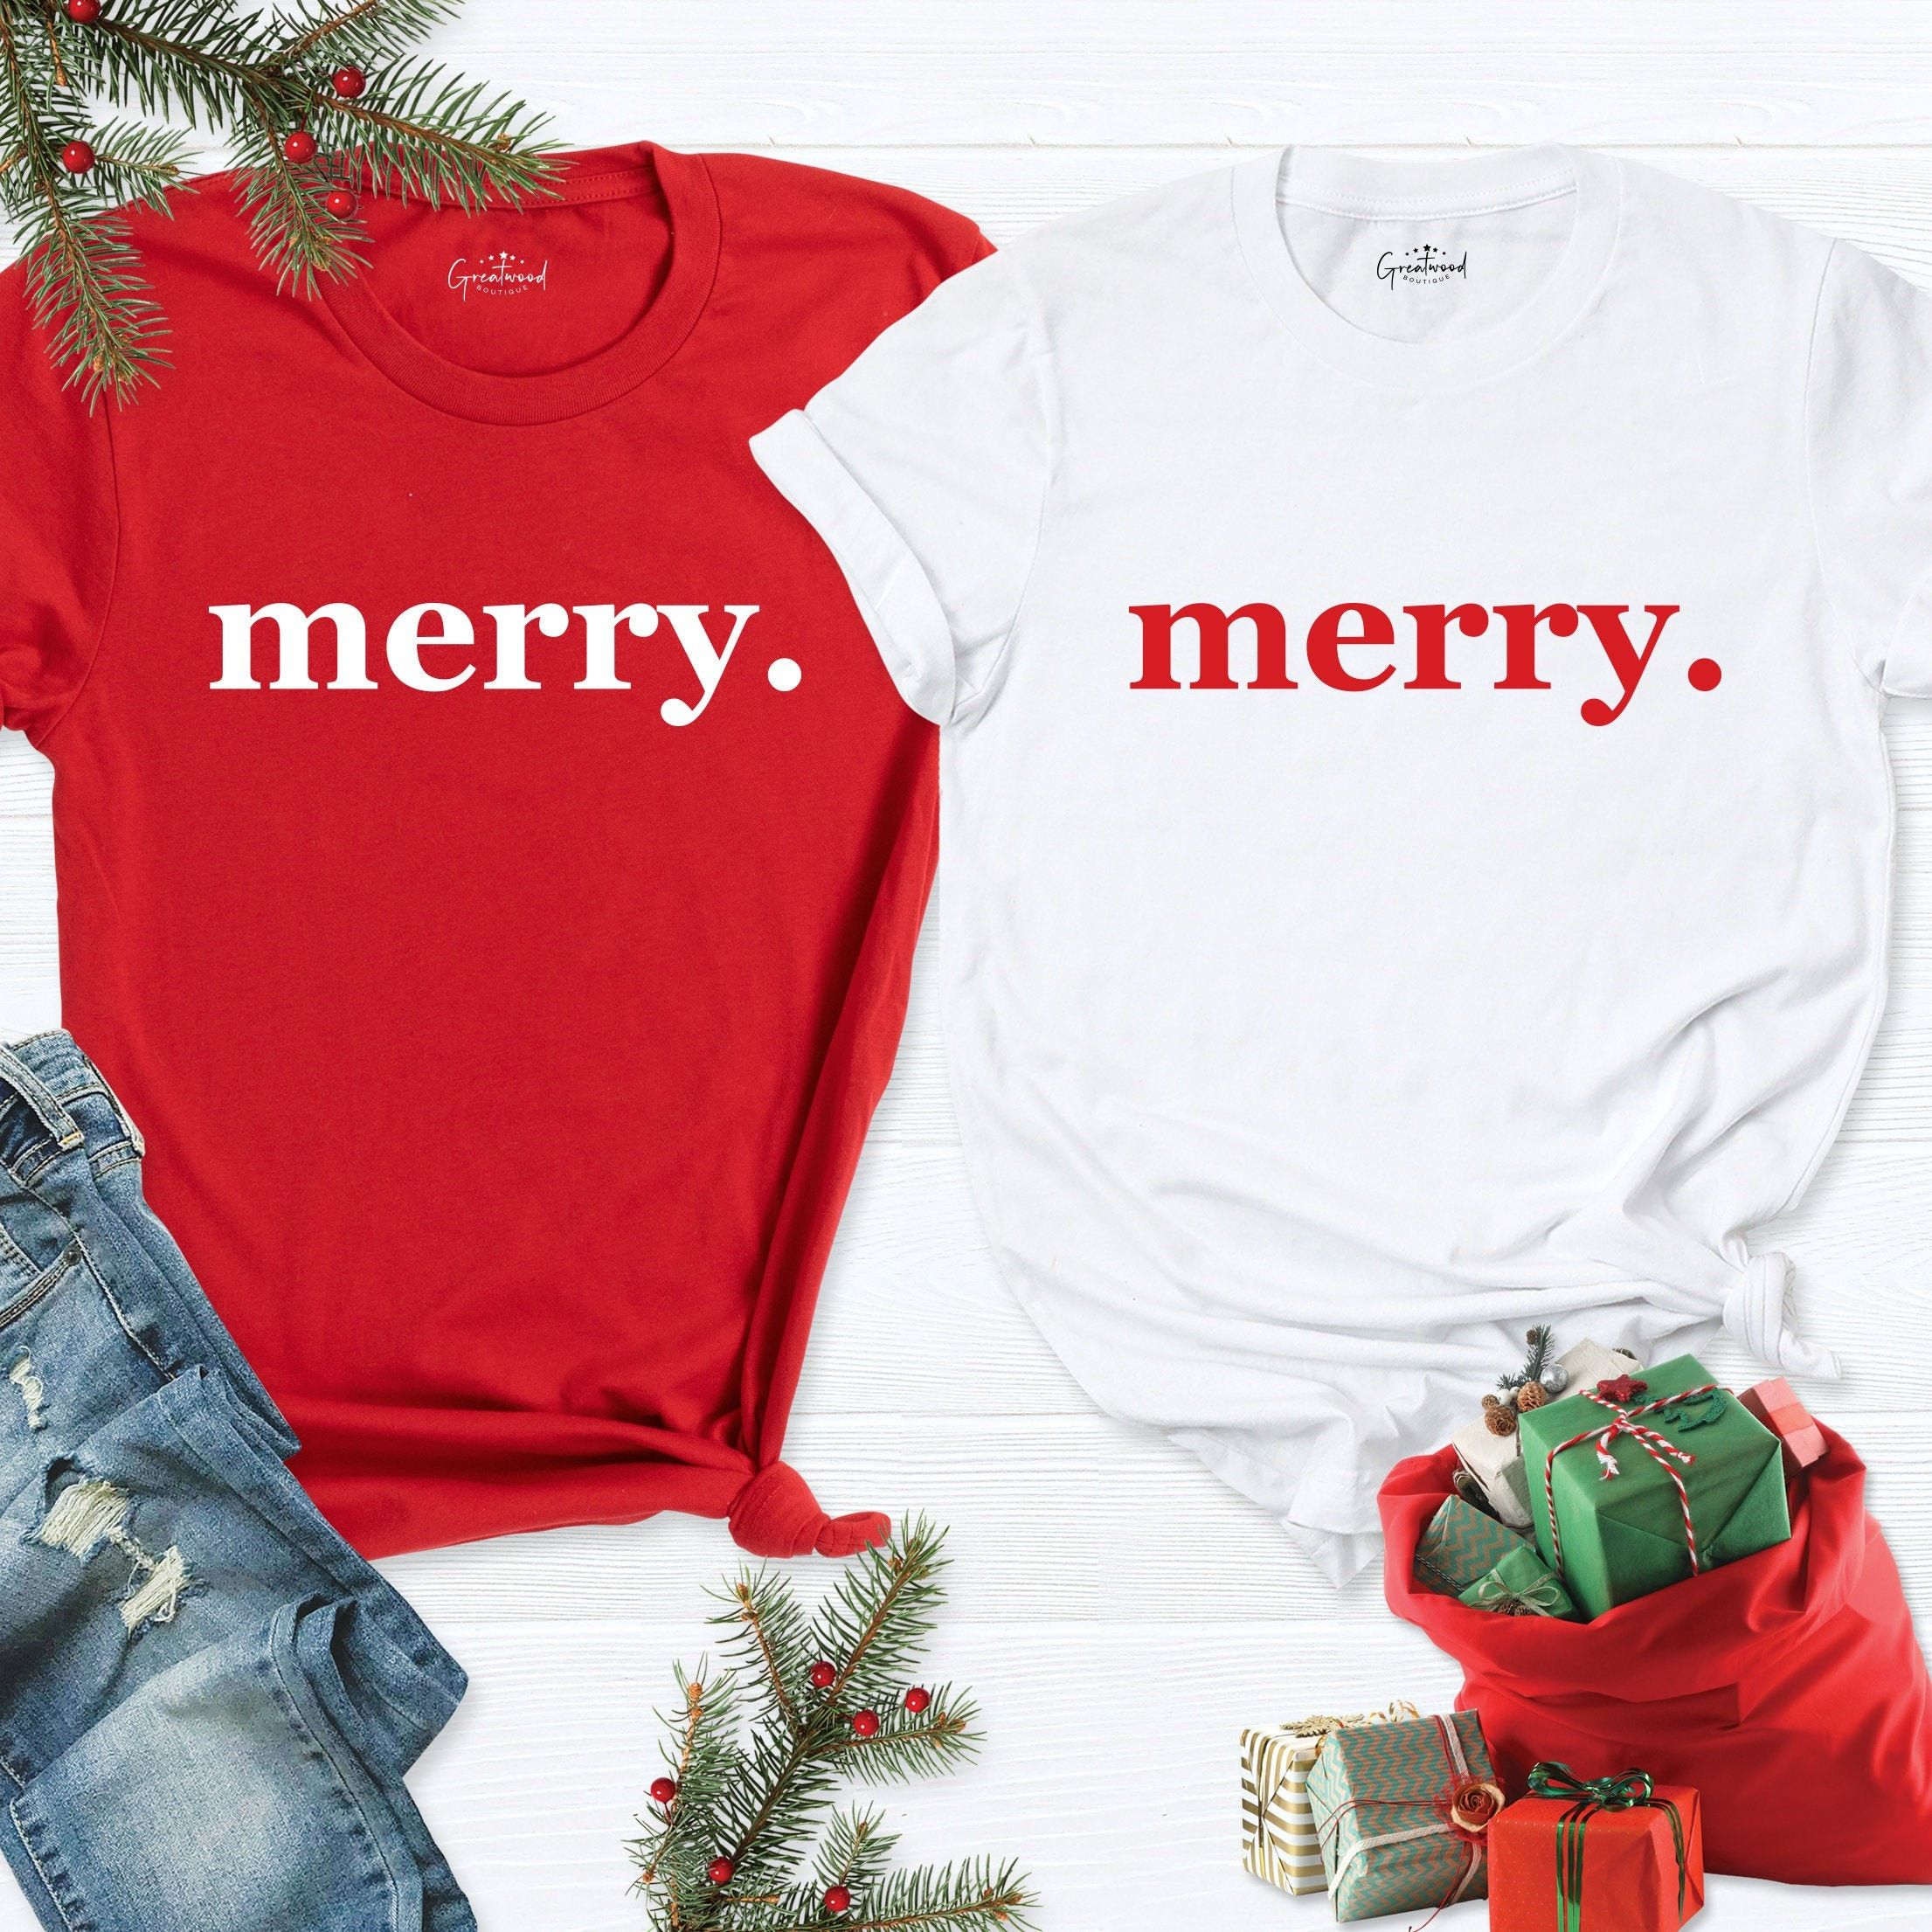 """""""Merry Shirt, Merry Tshirt, Christmas Shirt, Christmas Tshirt, Xmas Shirt, Cute Christmas Shirt, Merry Christmas Tee, Merry Christmas Tshirt HI! Welcome to my store, I'm delighted to see you here. My store's main goal is to make you happy. I see you as a friend, not just a customer. Please contact me if you have any questions or want to get a custom-made design. I'm sure you'll love my designs. If you liked the design but didn't like the shirt color we have, please contact me. I will do my best"""